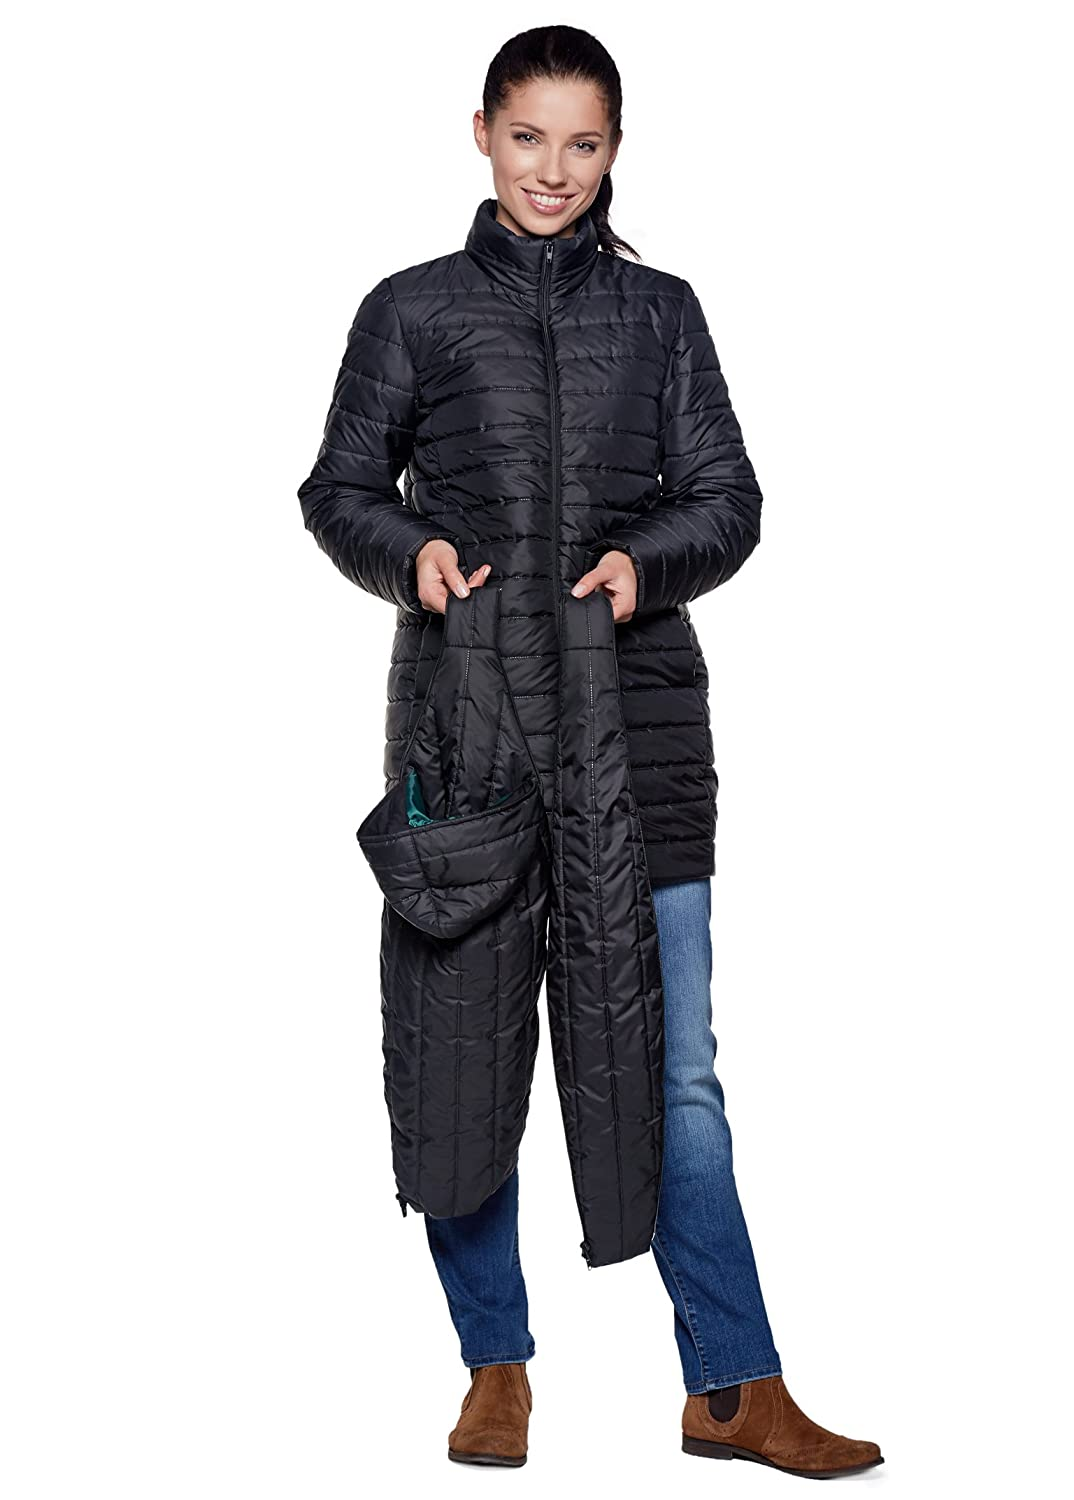 Be! Mama 3in1 - Wintertragejacke-Umstandsjacke & normale Damenjacke in einem - Modell: SORRENTO